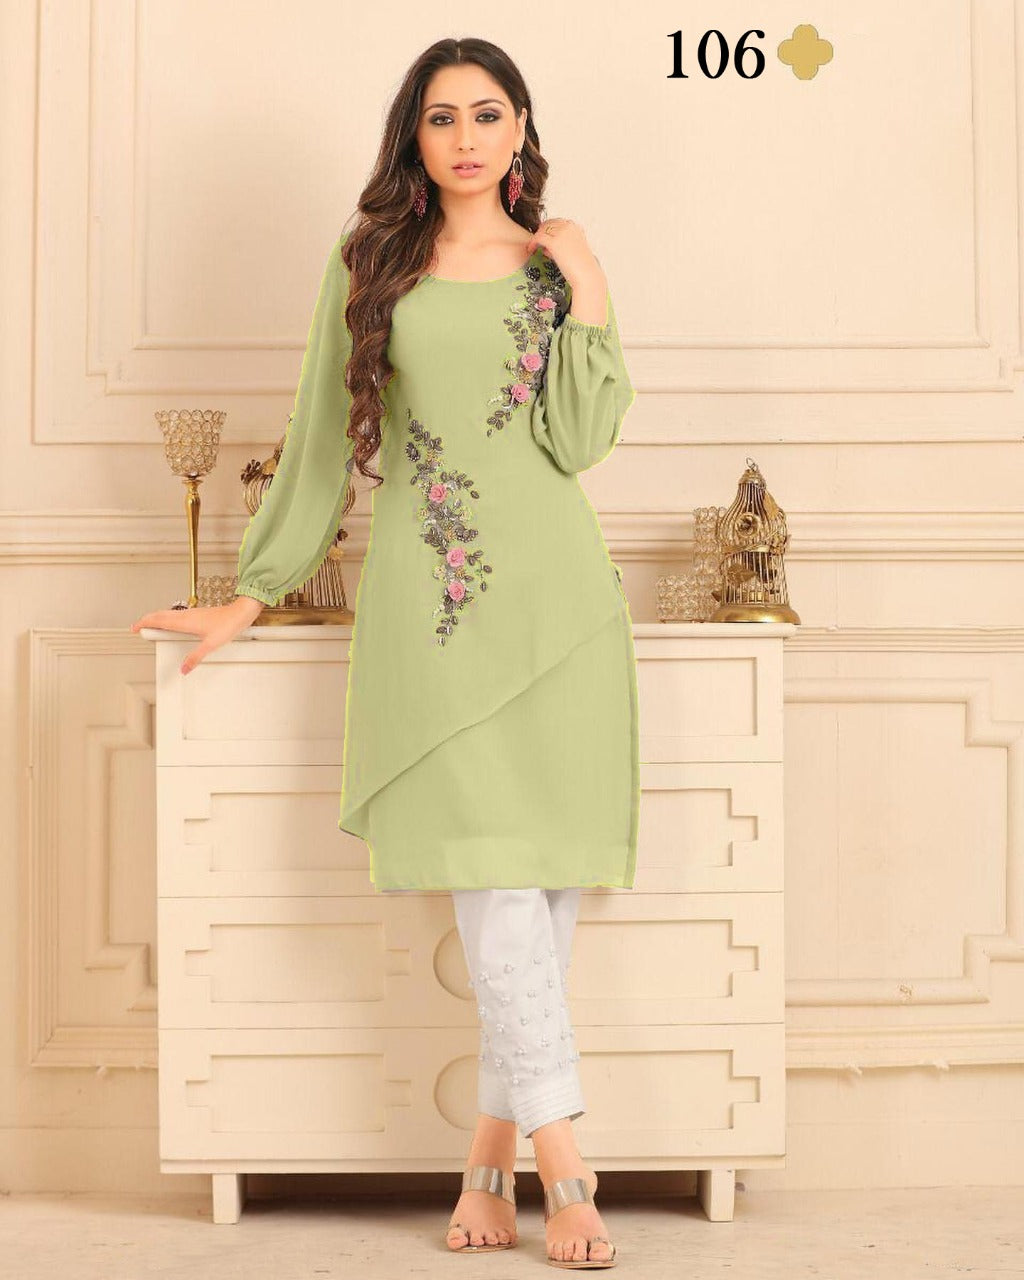 Pistachio Green Georgette Embroidered Ladies Kurti Pant Suit Designs